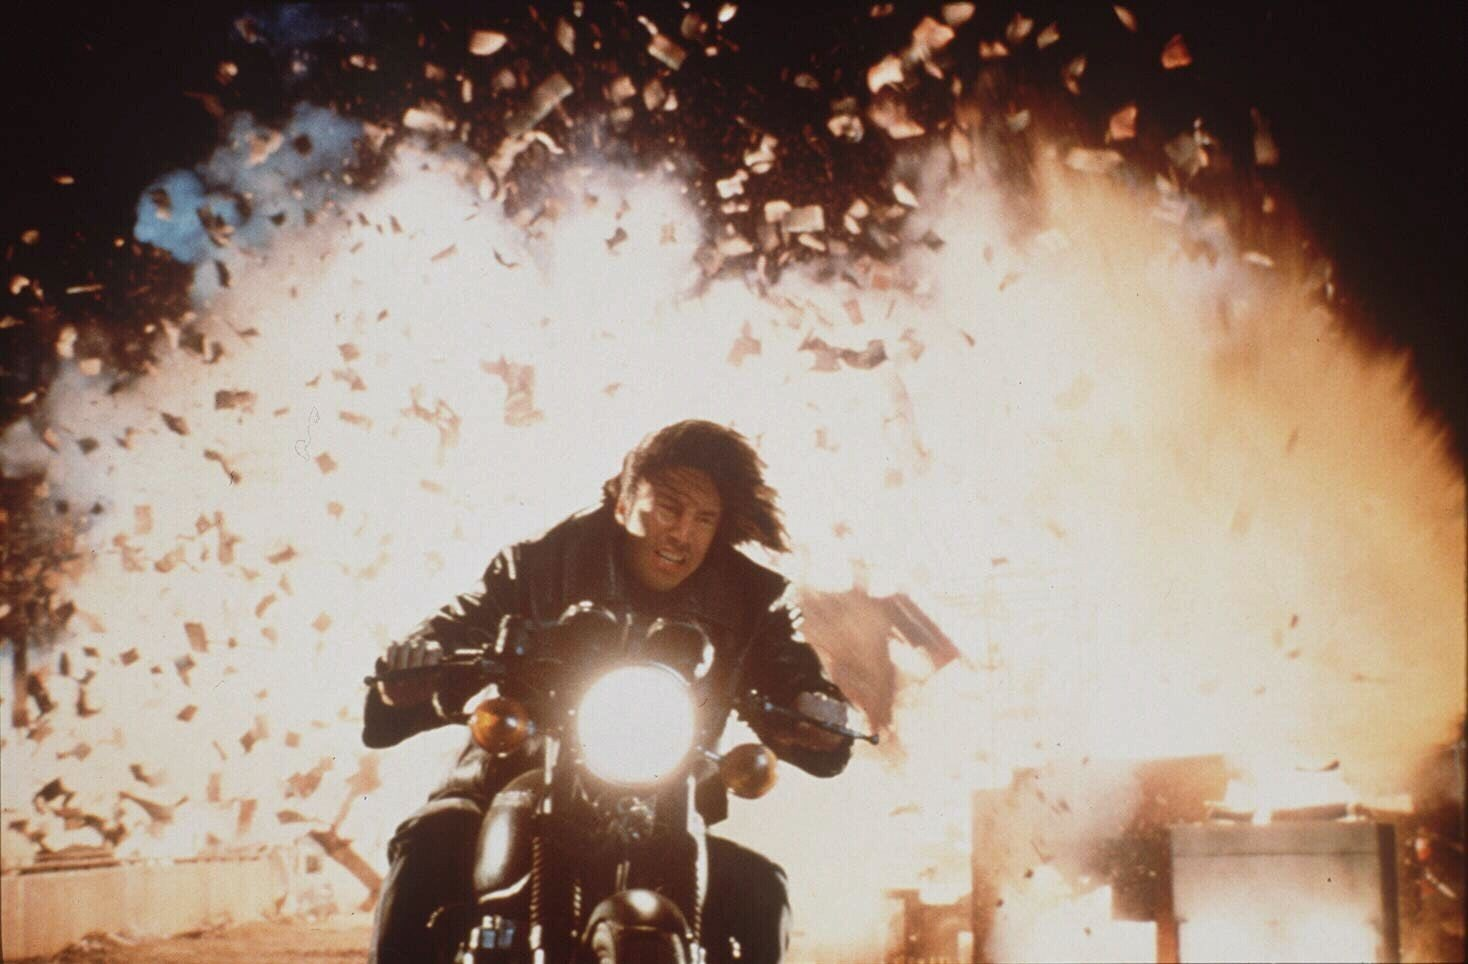 Keanu reeves & his Arch Motorcycle Company